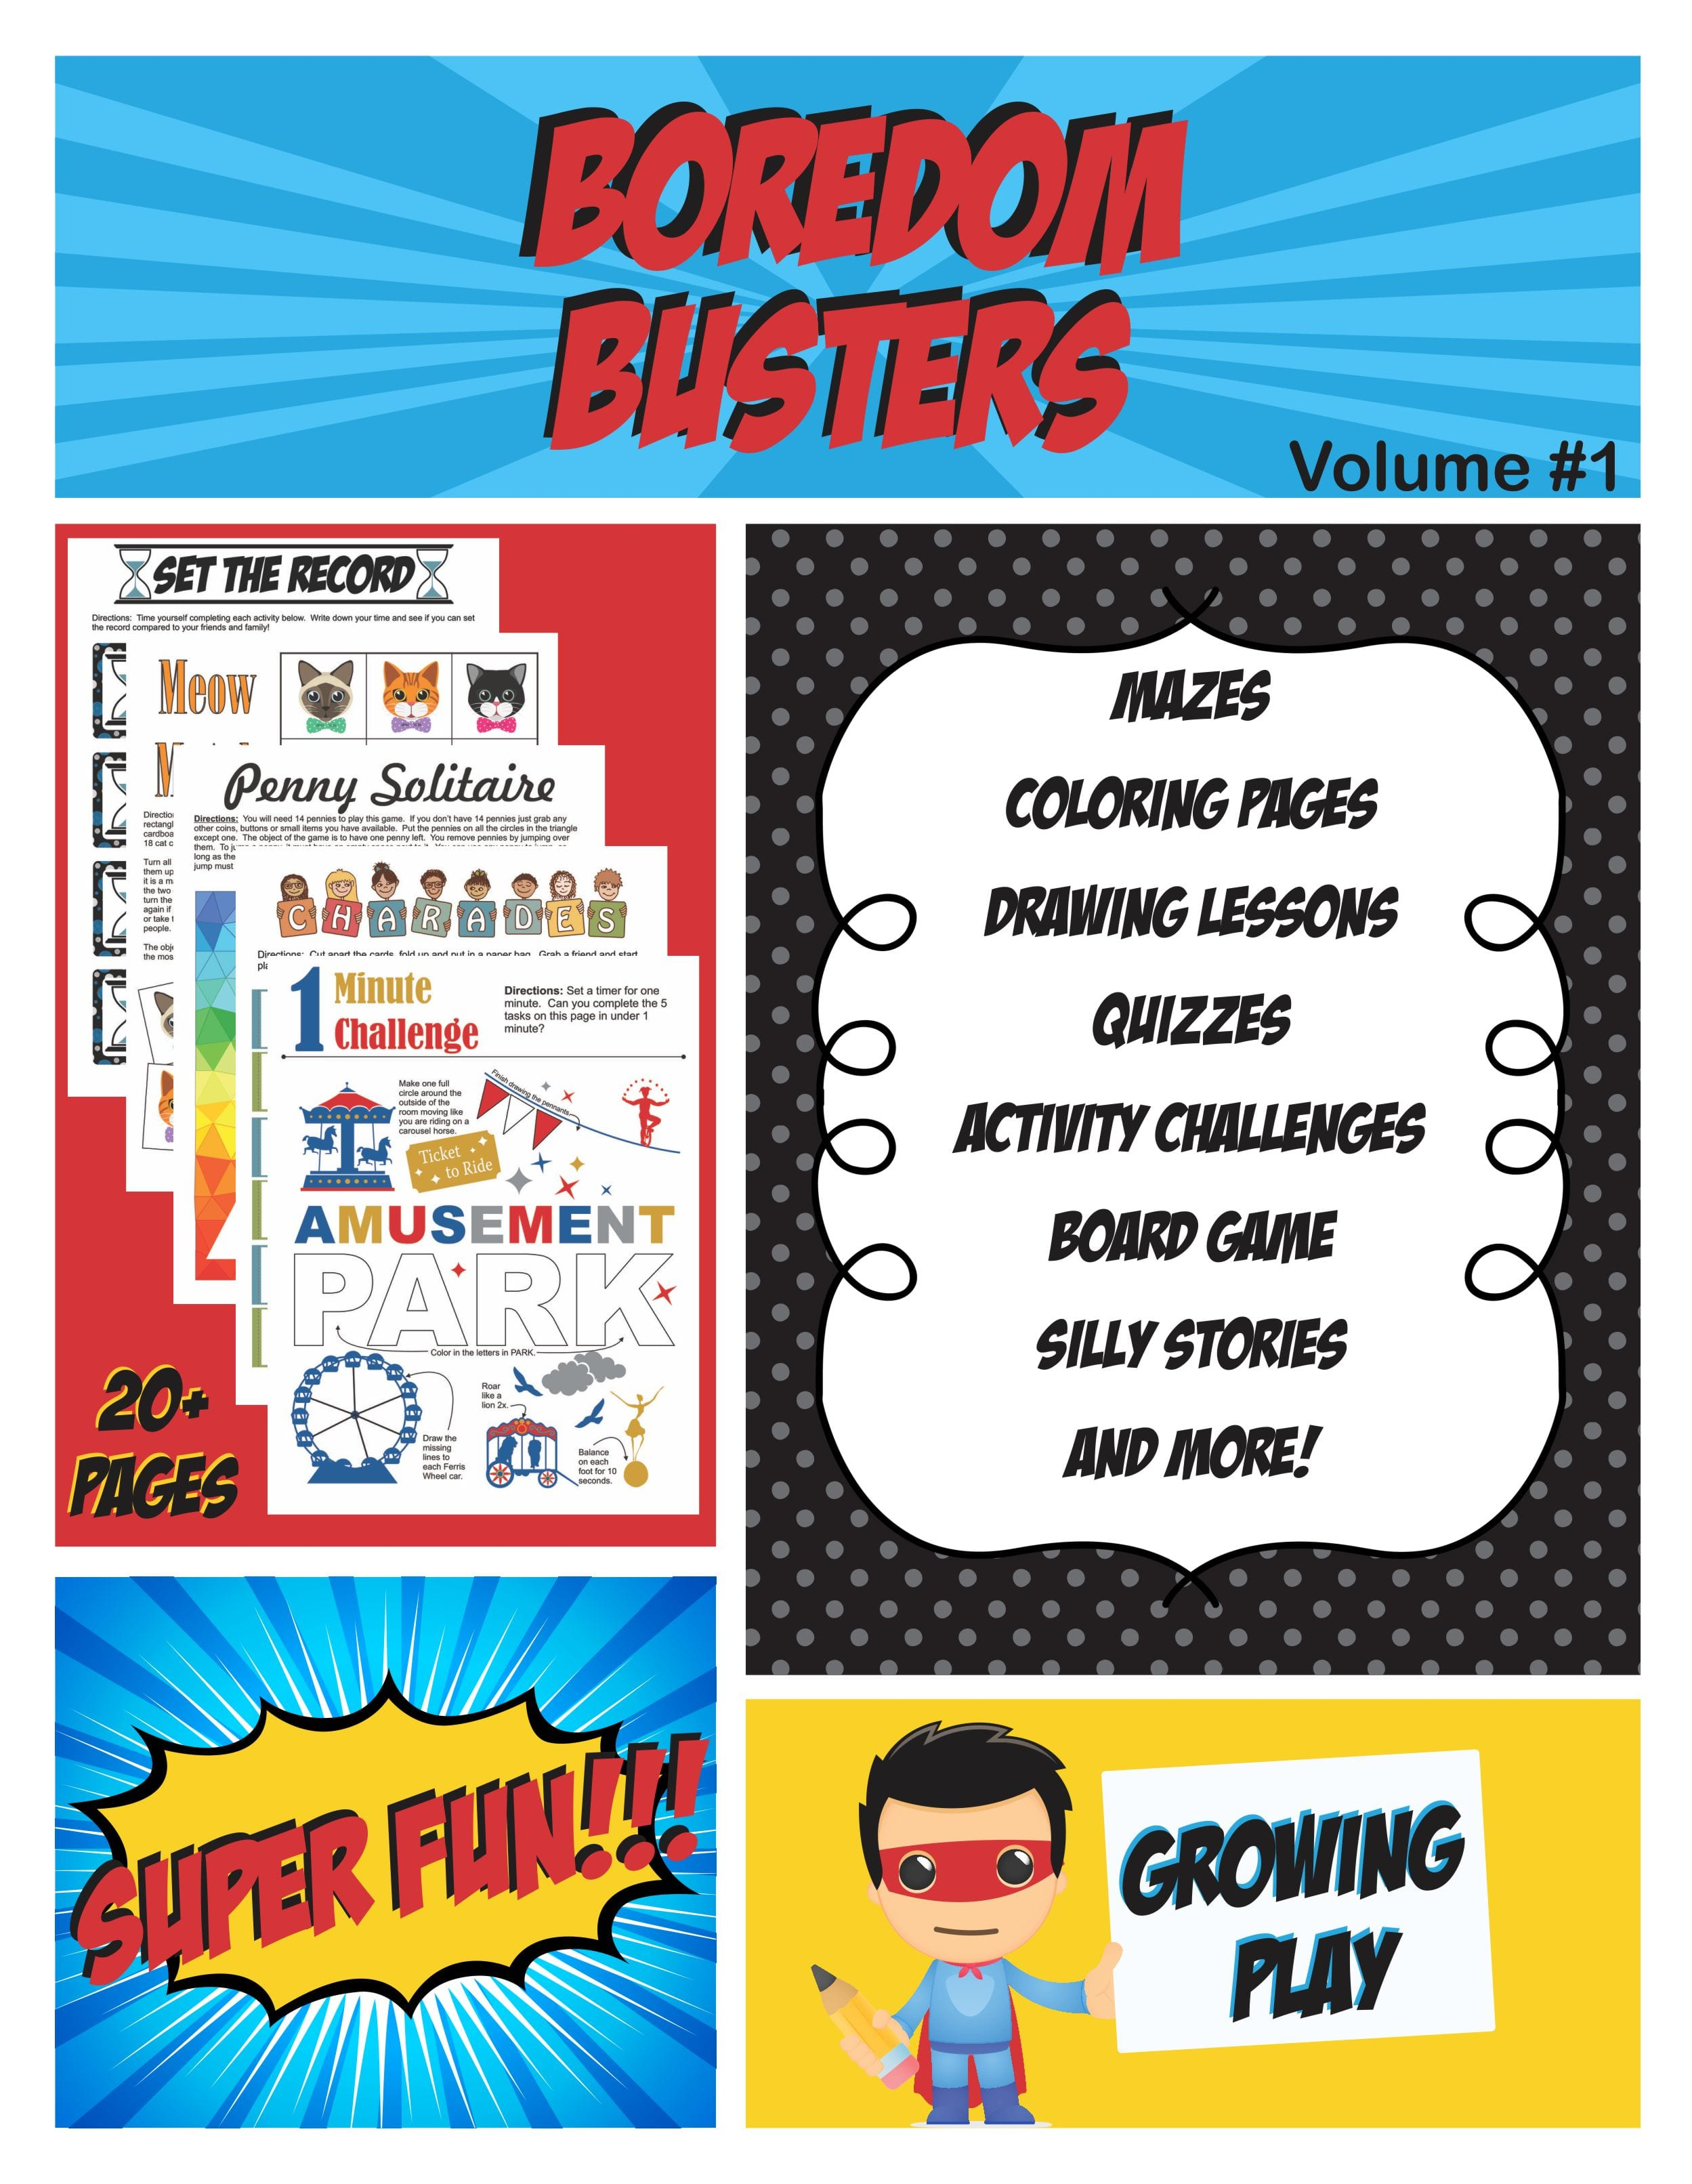 Boredom Busters Volume #1